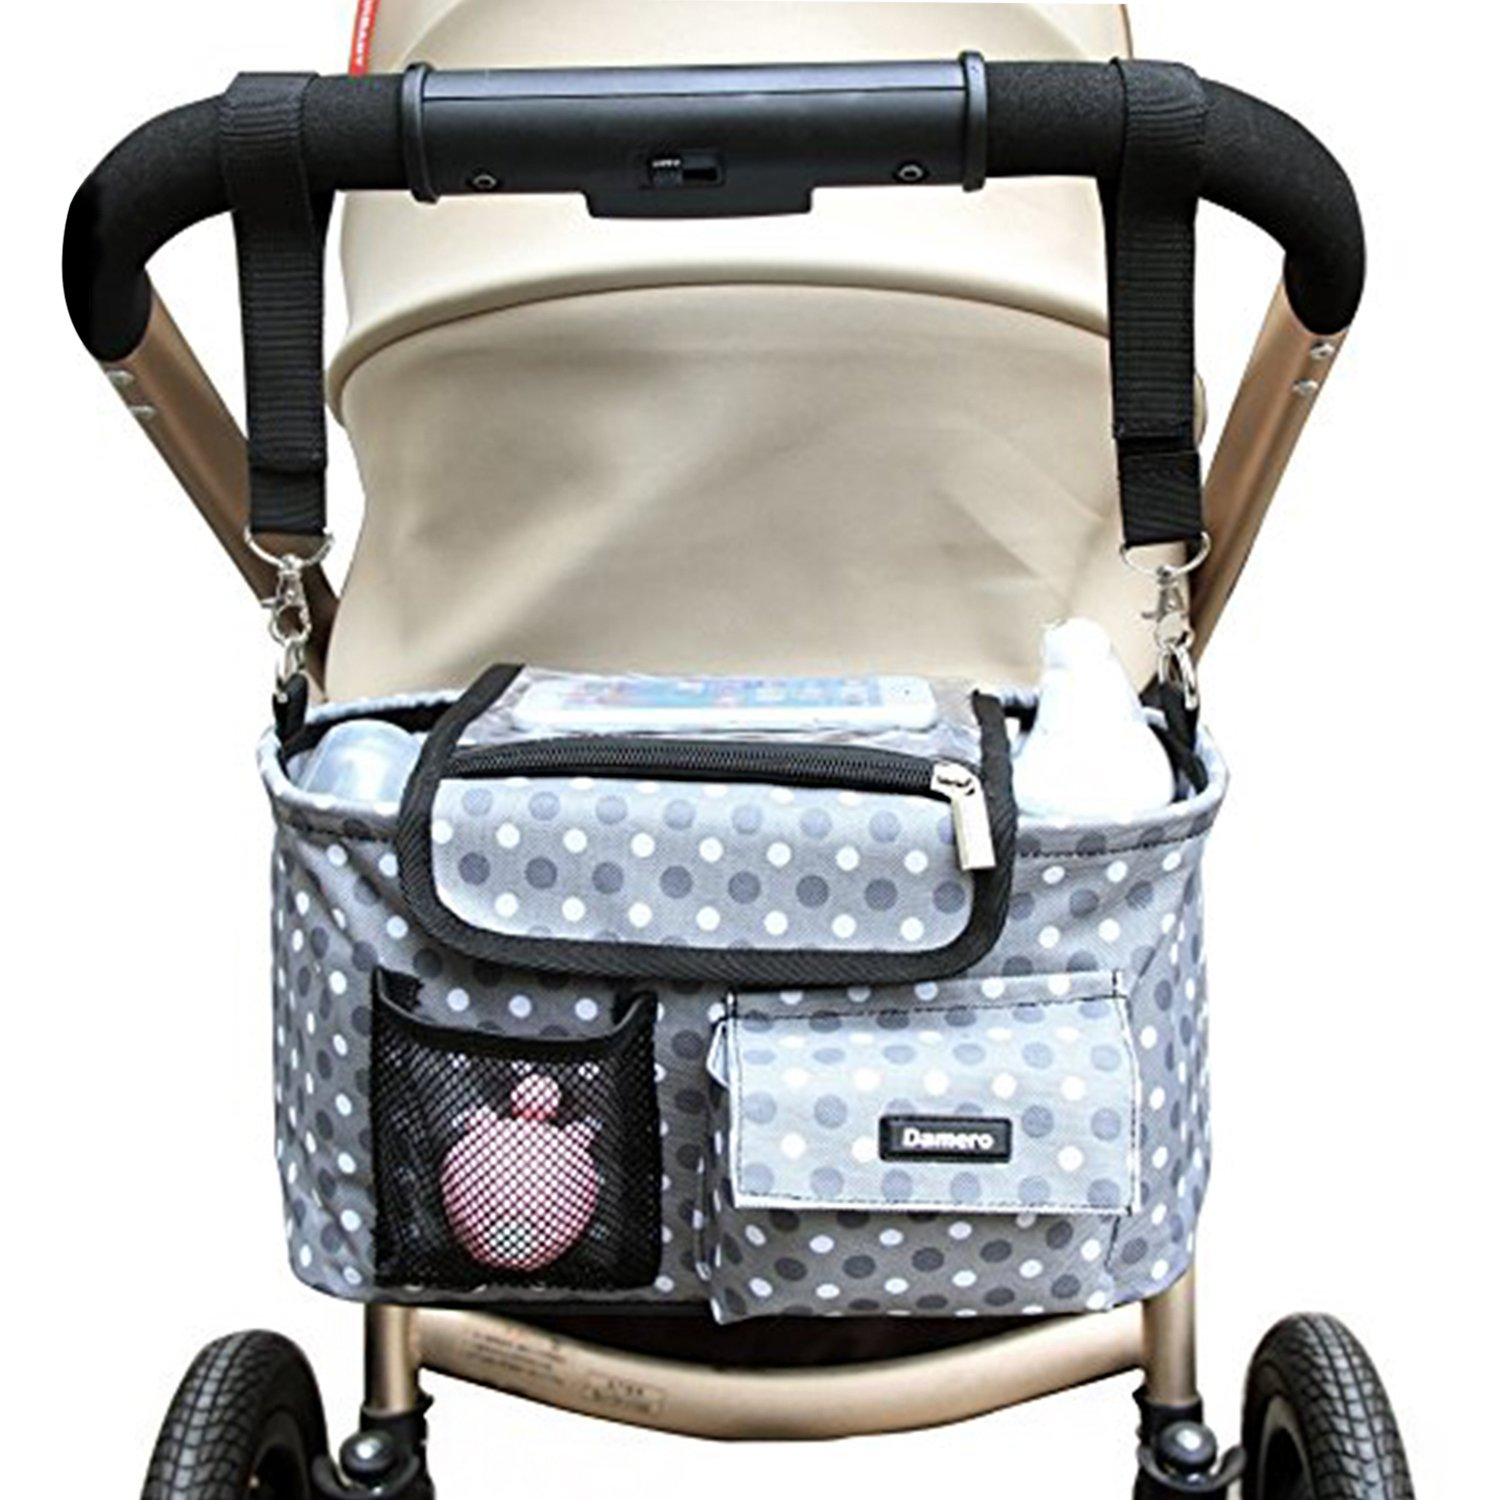 Damero Stroller Organizer All-in-One Insulated Storage Bag with Shoulder Strap and Stroller Strap, Spacious and Neat, Great for Baby Shower Gift-New Version